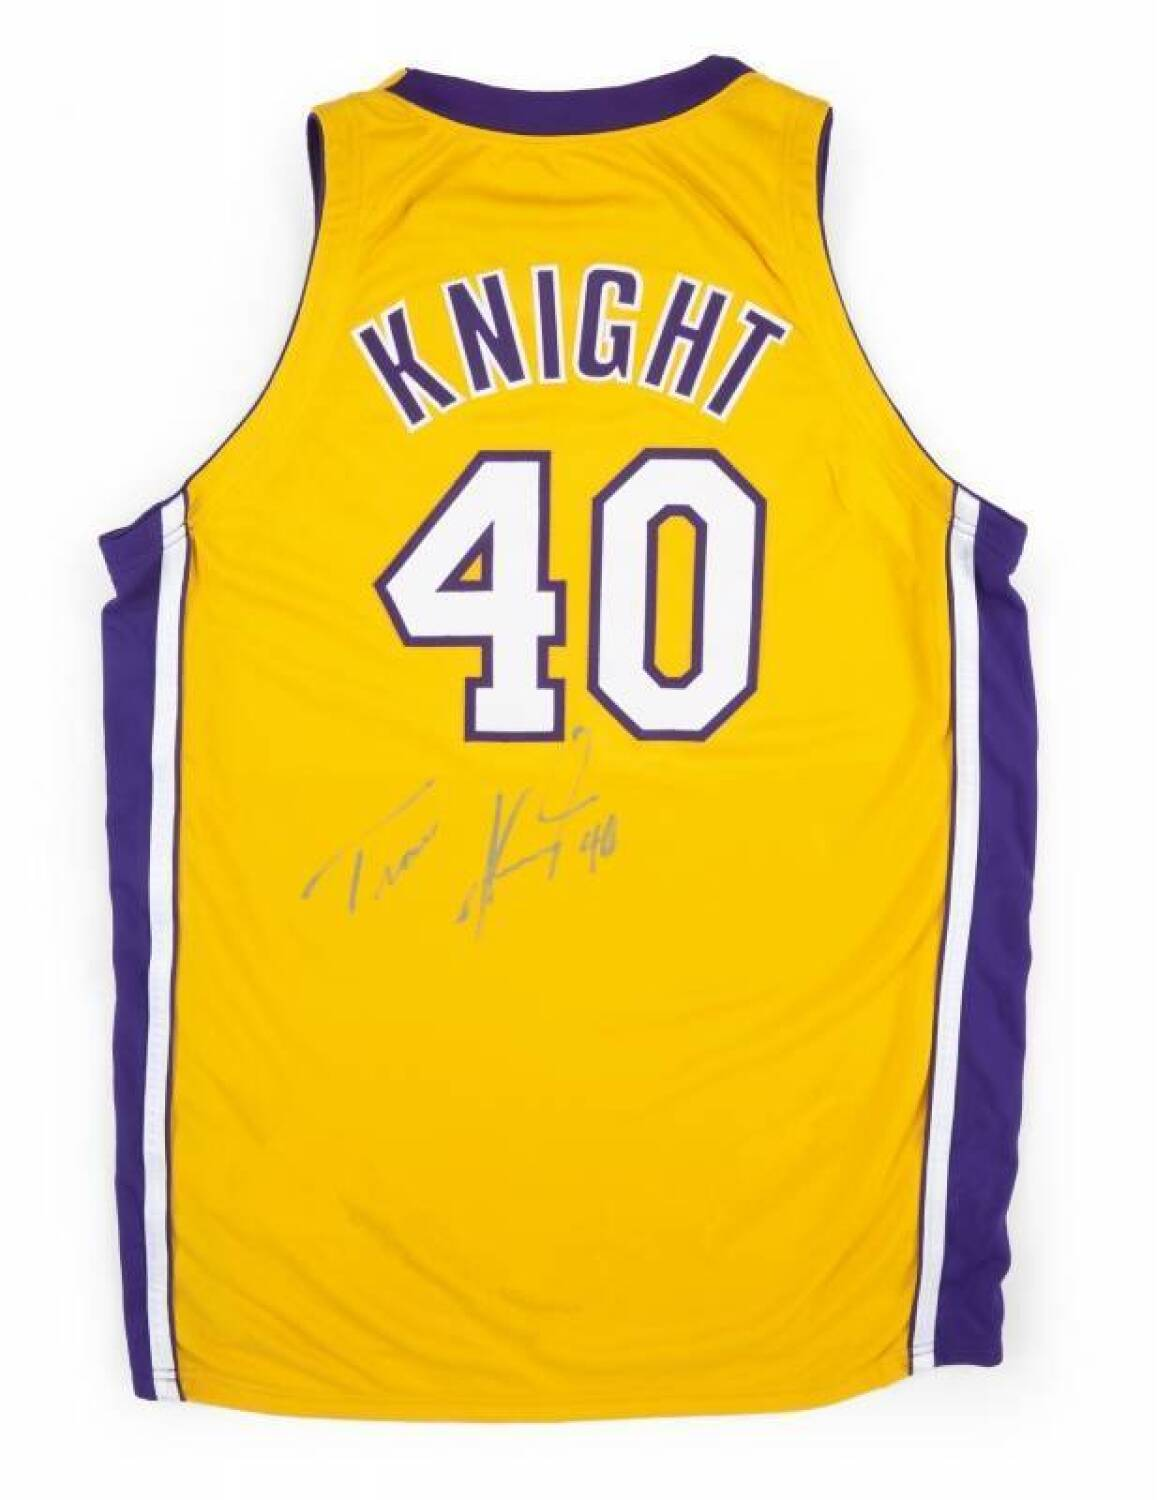 614993b9281 TRAVIS KNIGHT 2000 GAME WORN AND SIGNED LOS ANGELES LAKERS JERSEY ...